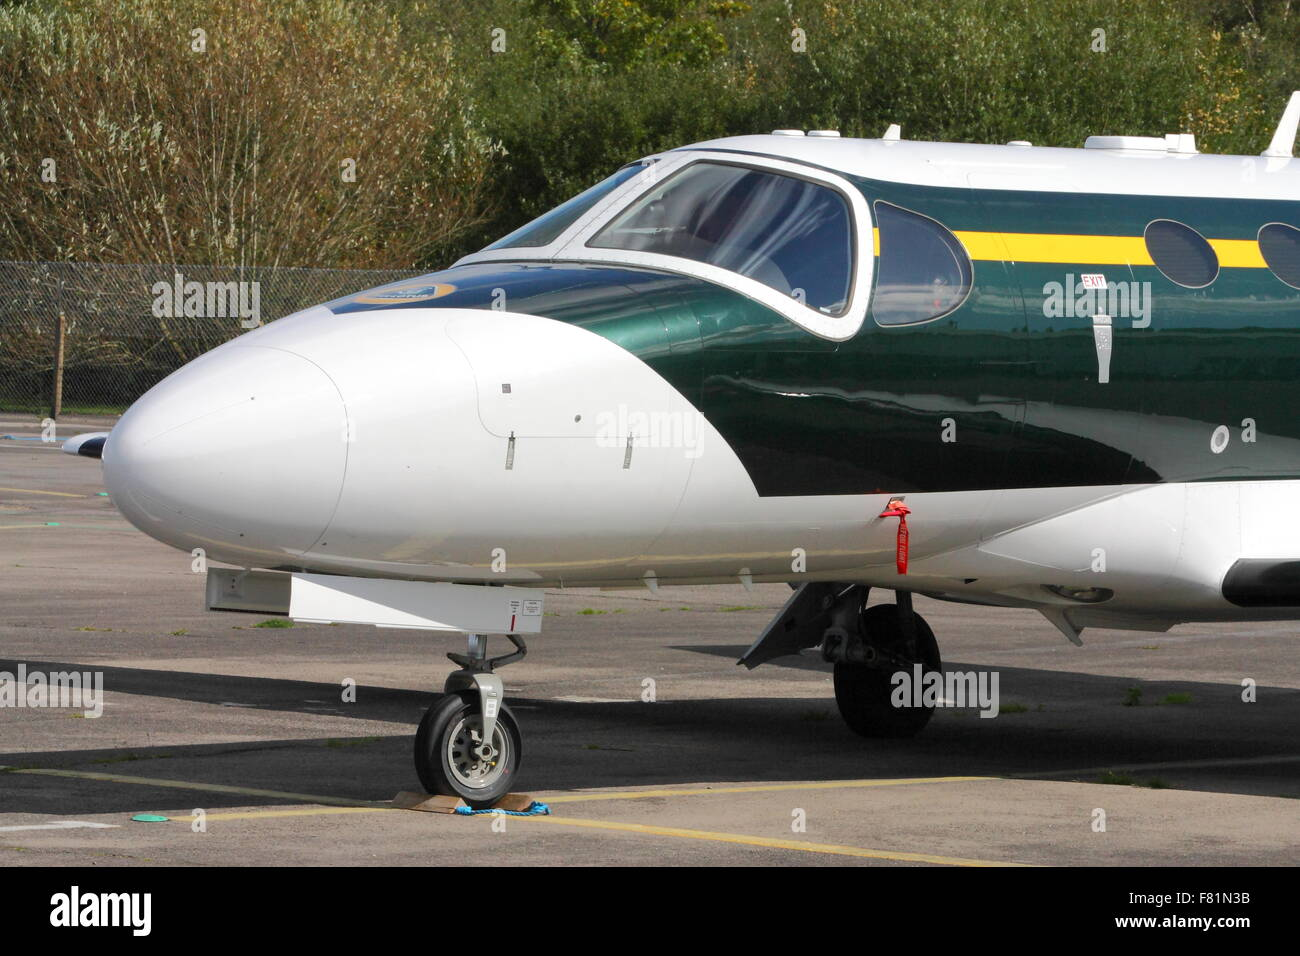 Cessna 510 Citation Mustang of Team Lotus parked at Blackbushe Airport - Stock Image